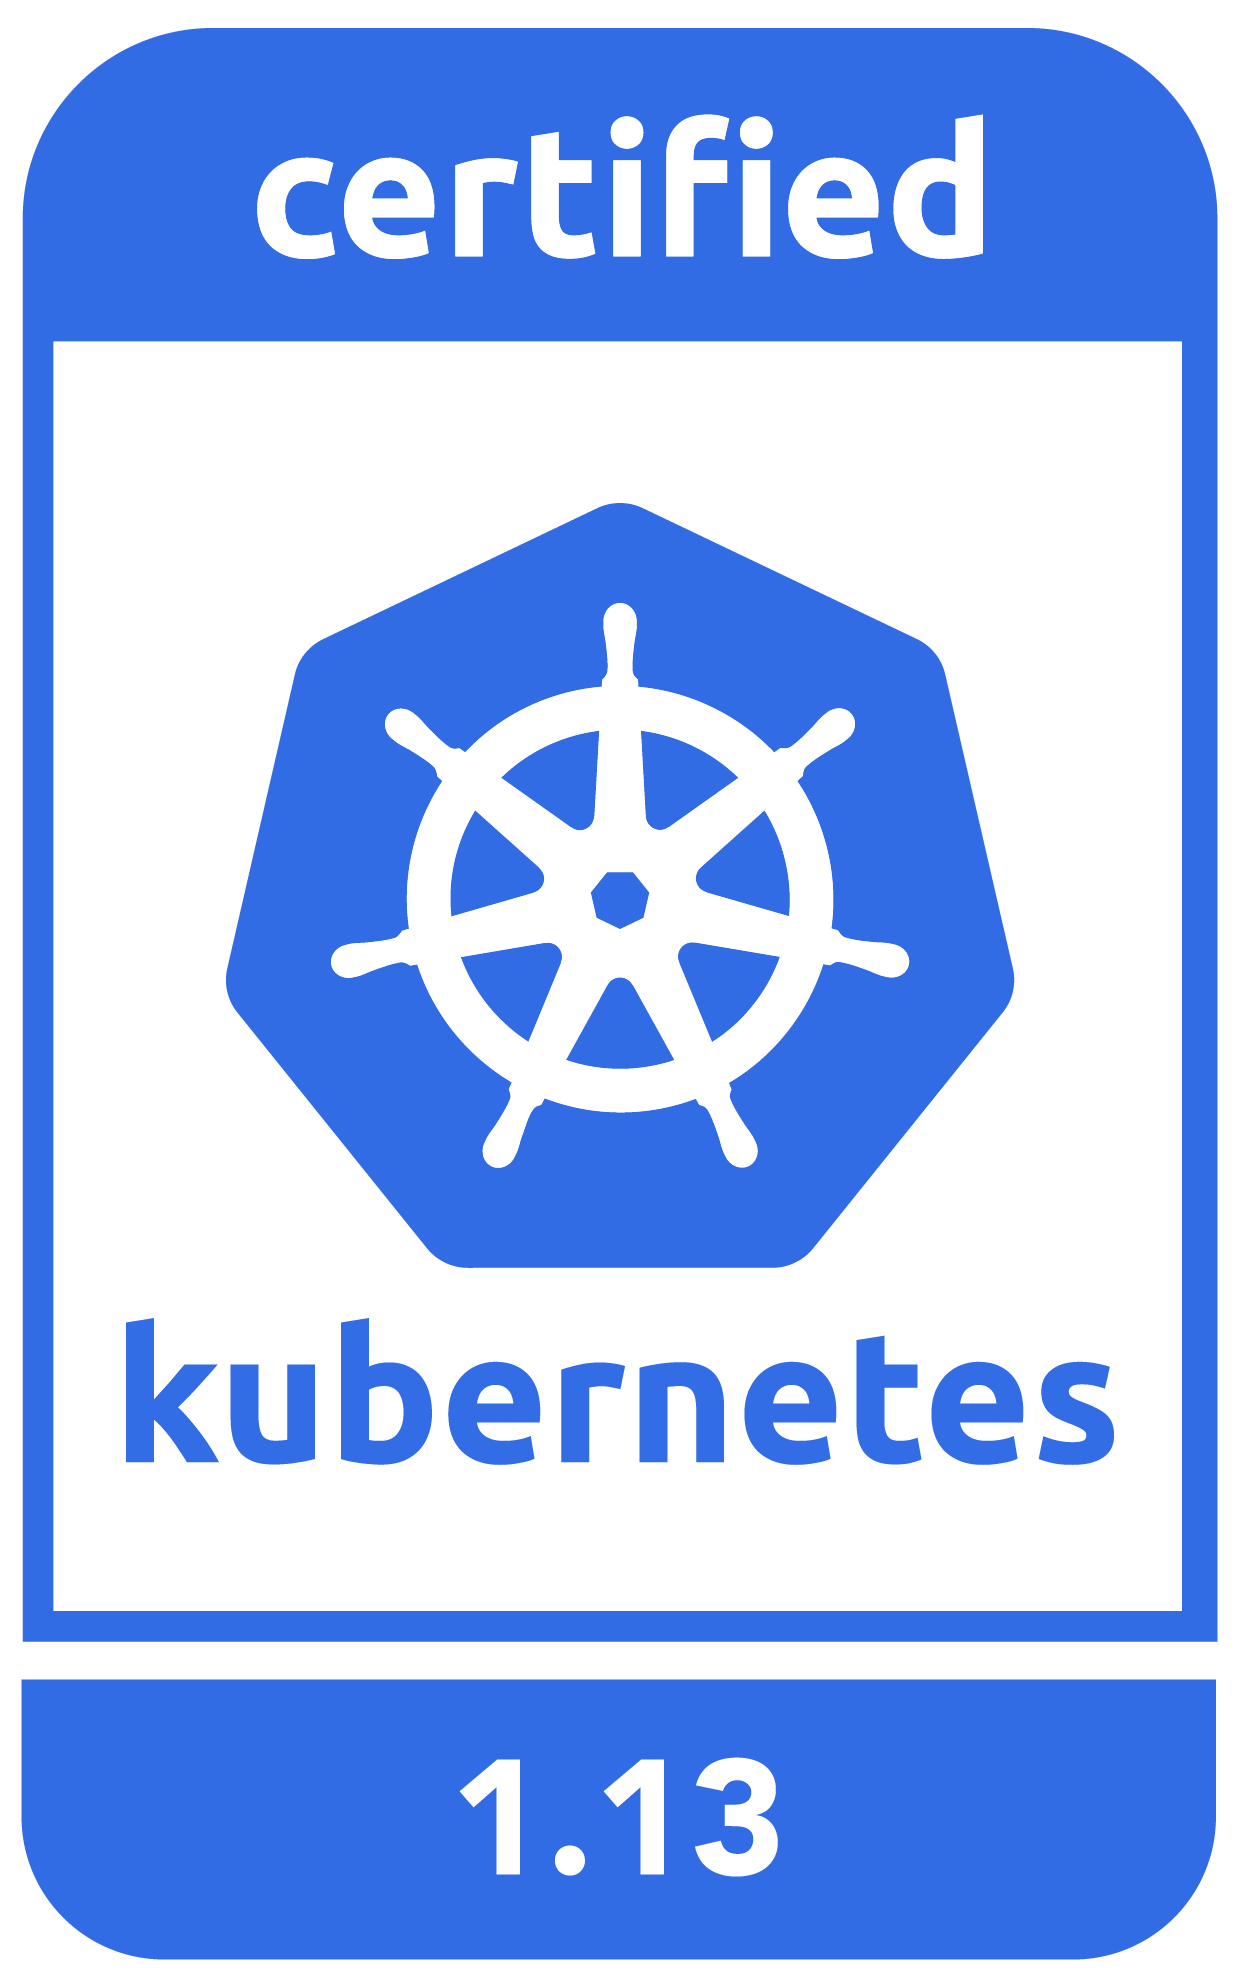 Kubernetes 1.13 certification logo